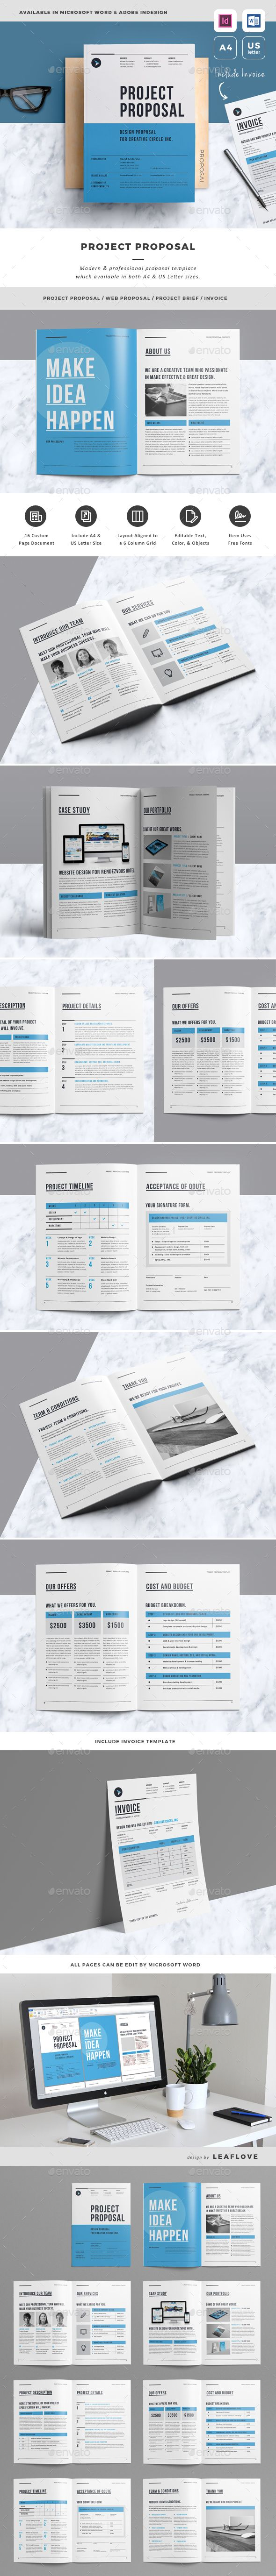 Proposal Template InDesign INDD - 16 Pages, A4 & US Letter Size ...